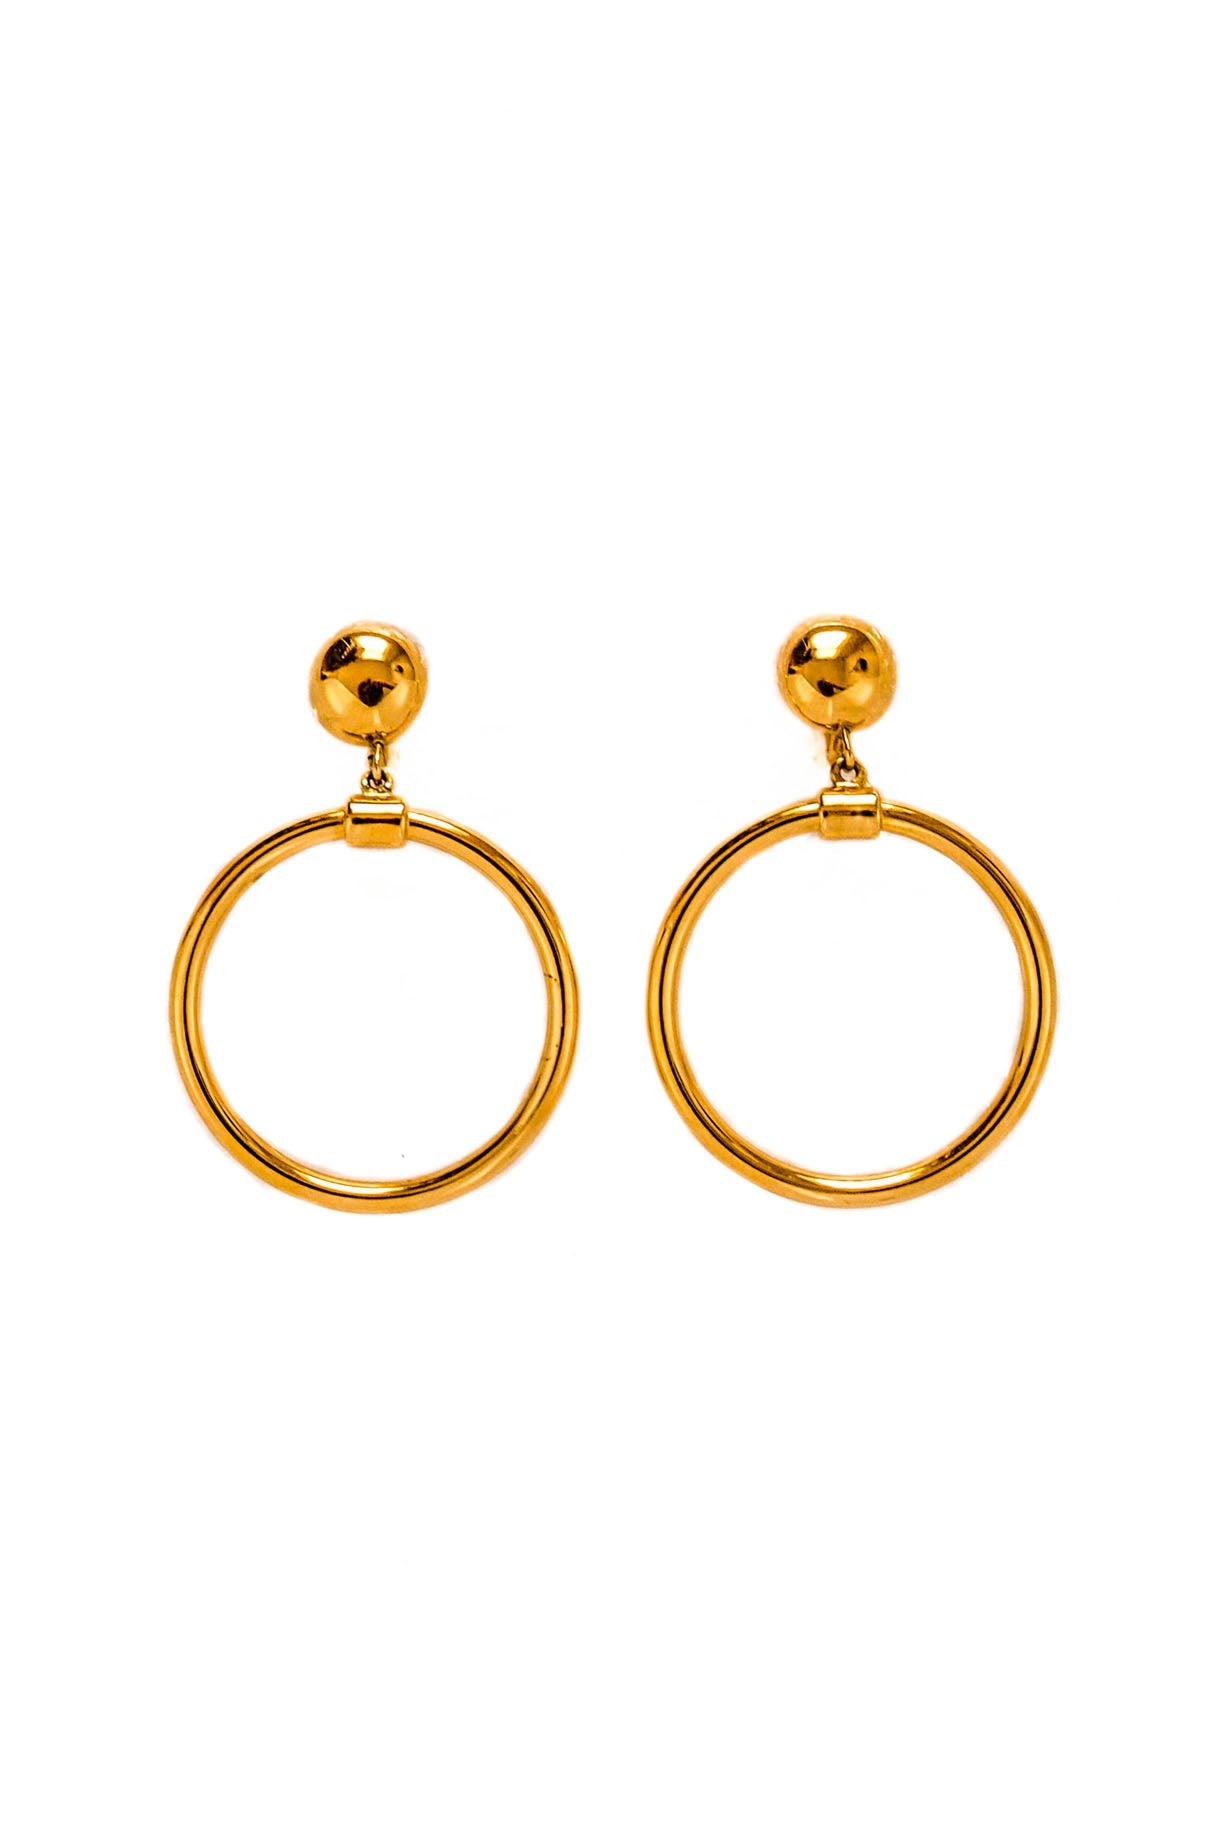 Vintage Monet Hoop Earrings from Sweet & Spark.